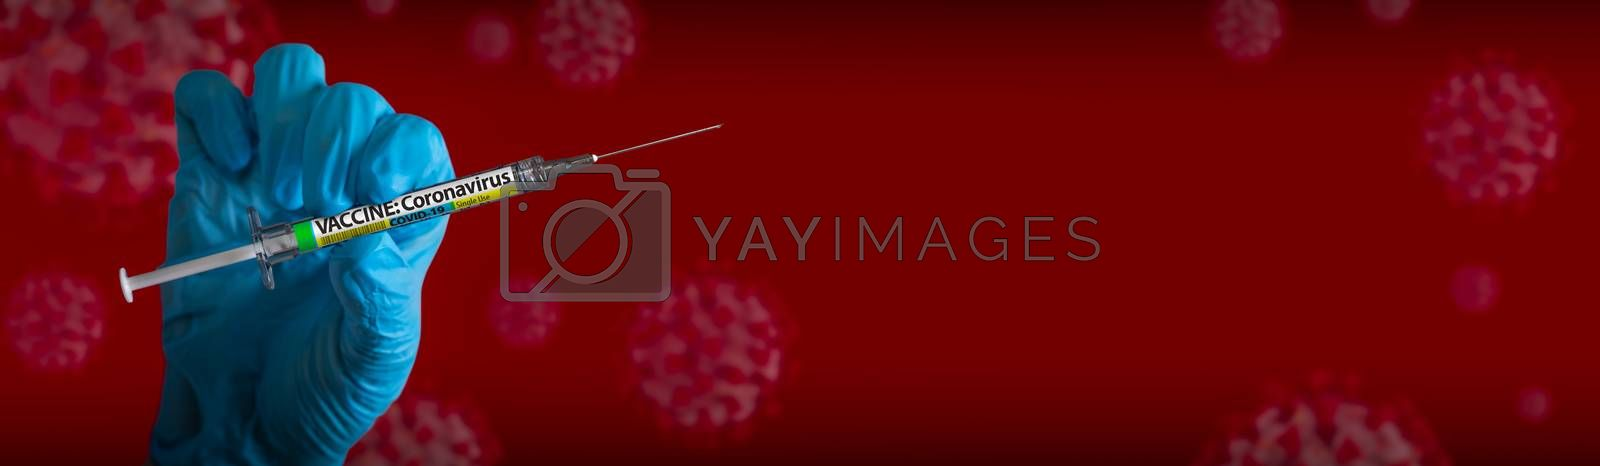 Doctor or Nurse Wearing Surgical Glove Holding Medical Syringe with Coronavirus COVID-19 Vaccine Label Banner of Cells.